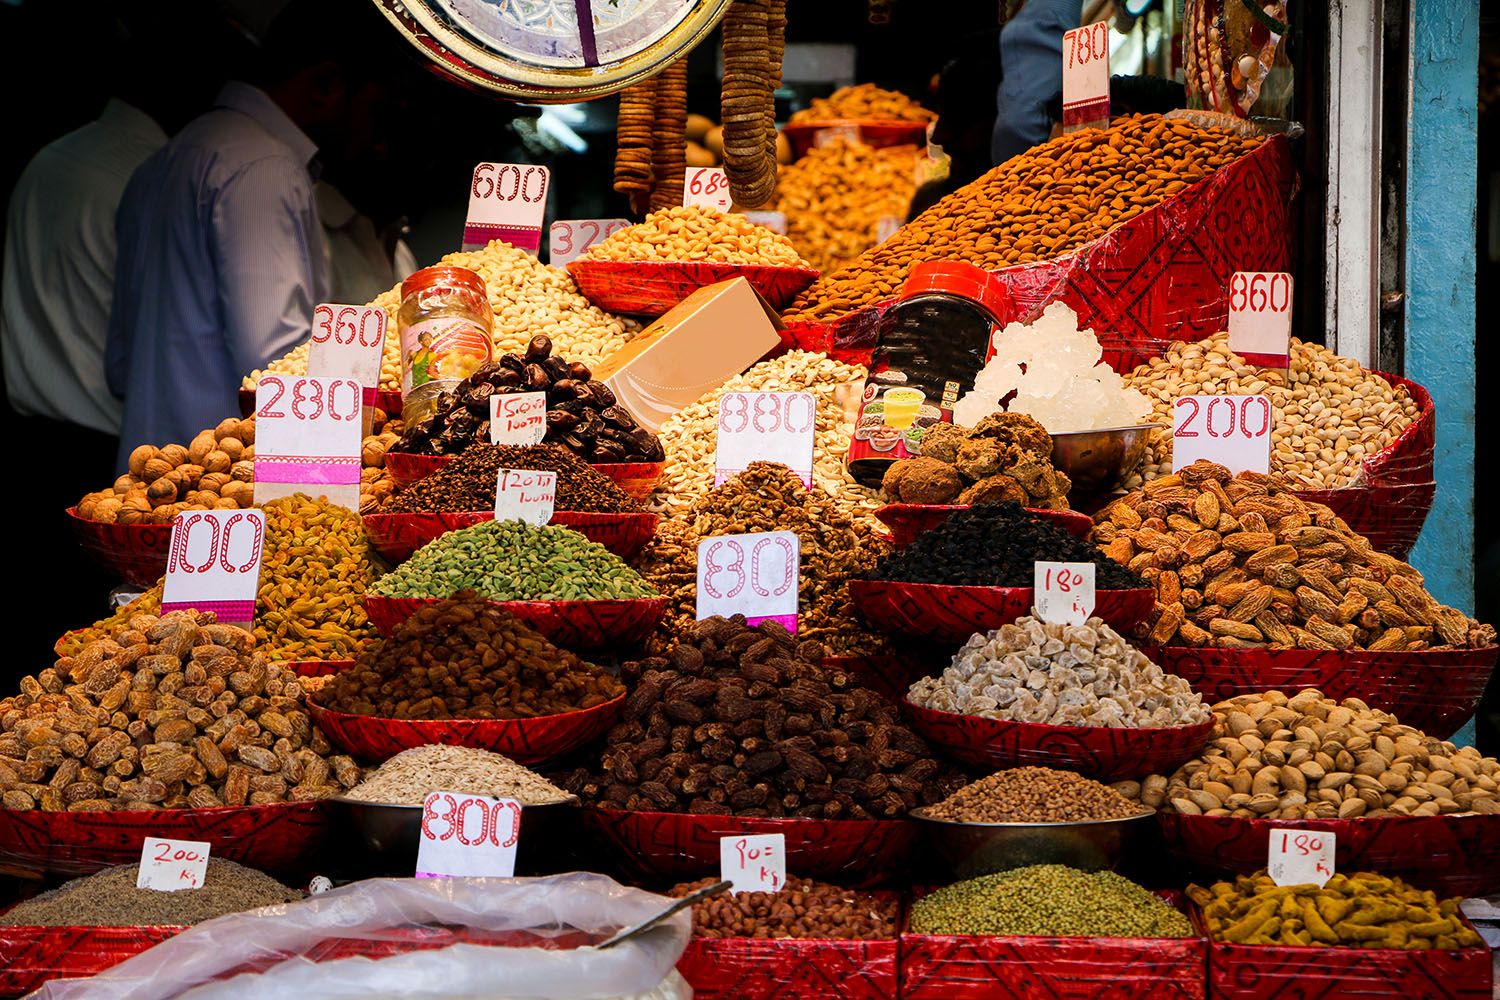 Dry food in Delhi's old town